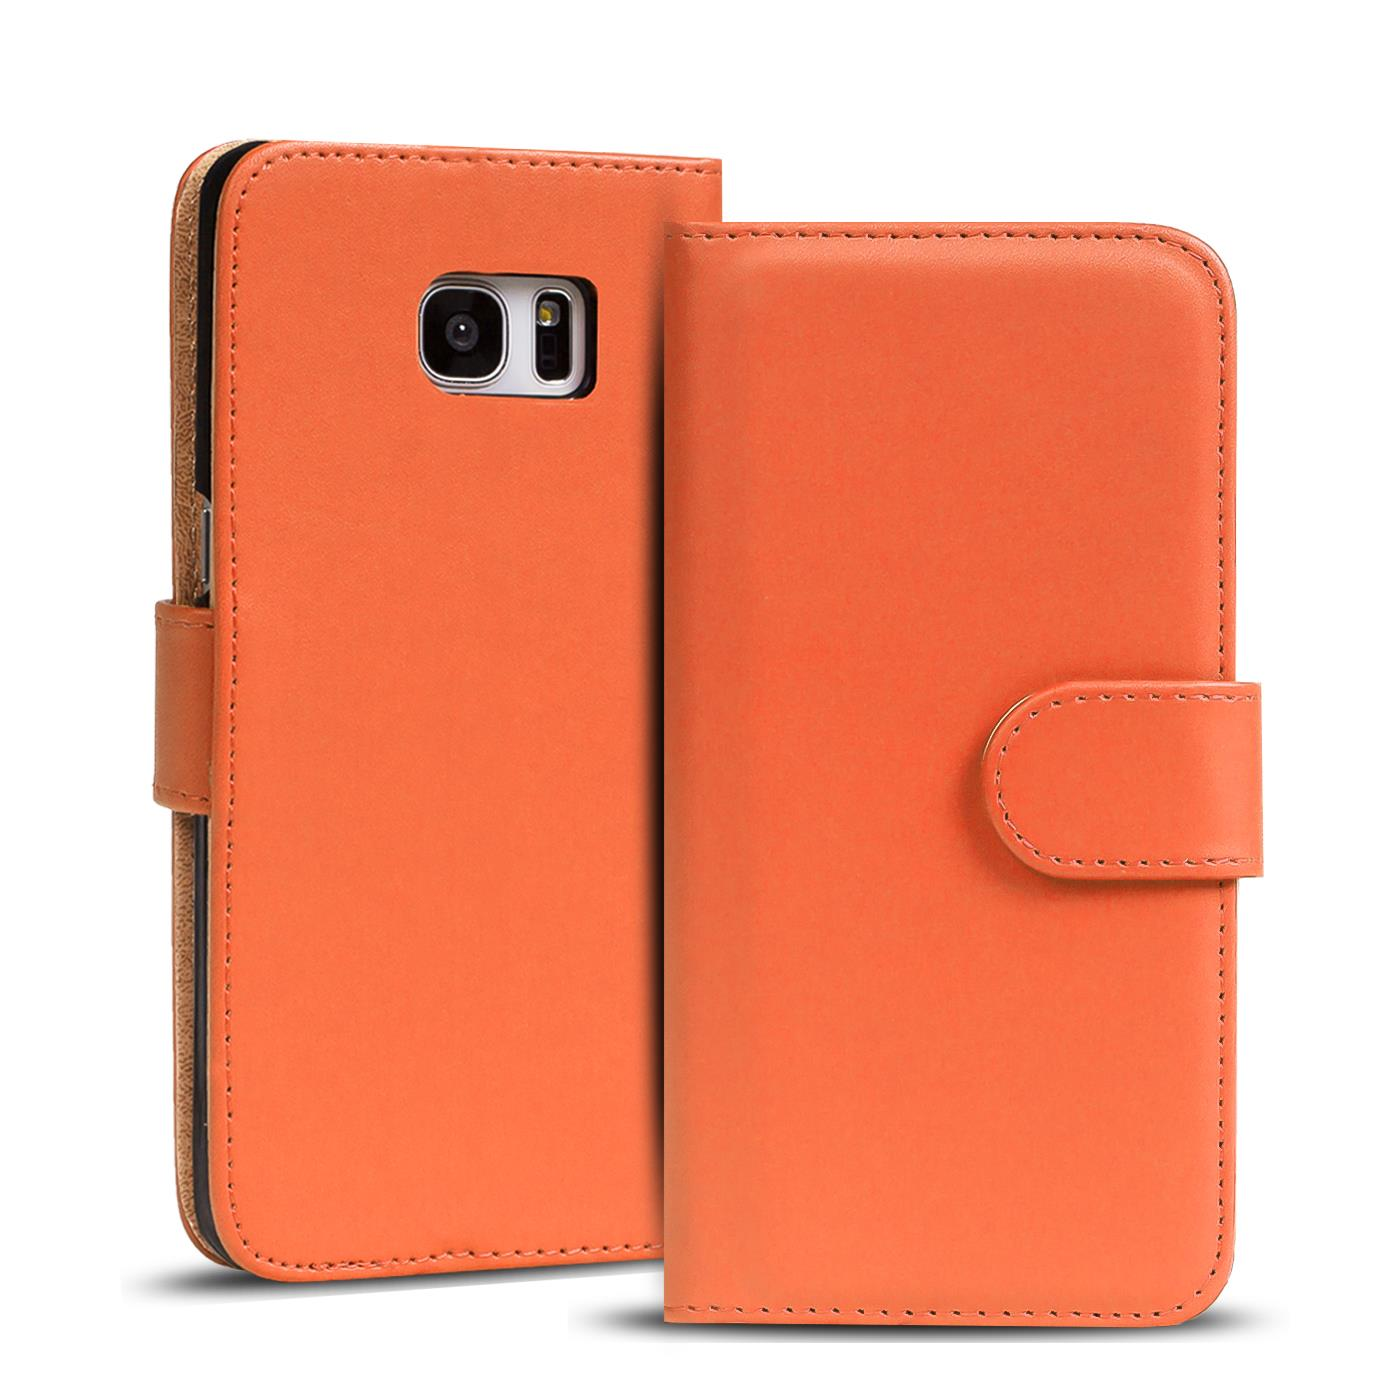 Handyhülle S6 Edge Leder Details About Book Case Samsung Galaxy S6 Edge Case Flip Cover Phone Protection In Orange